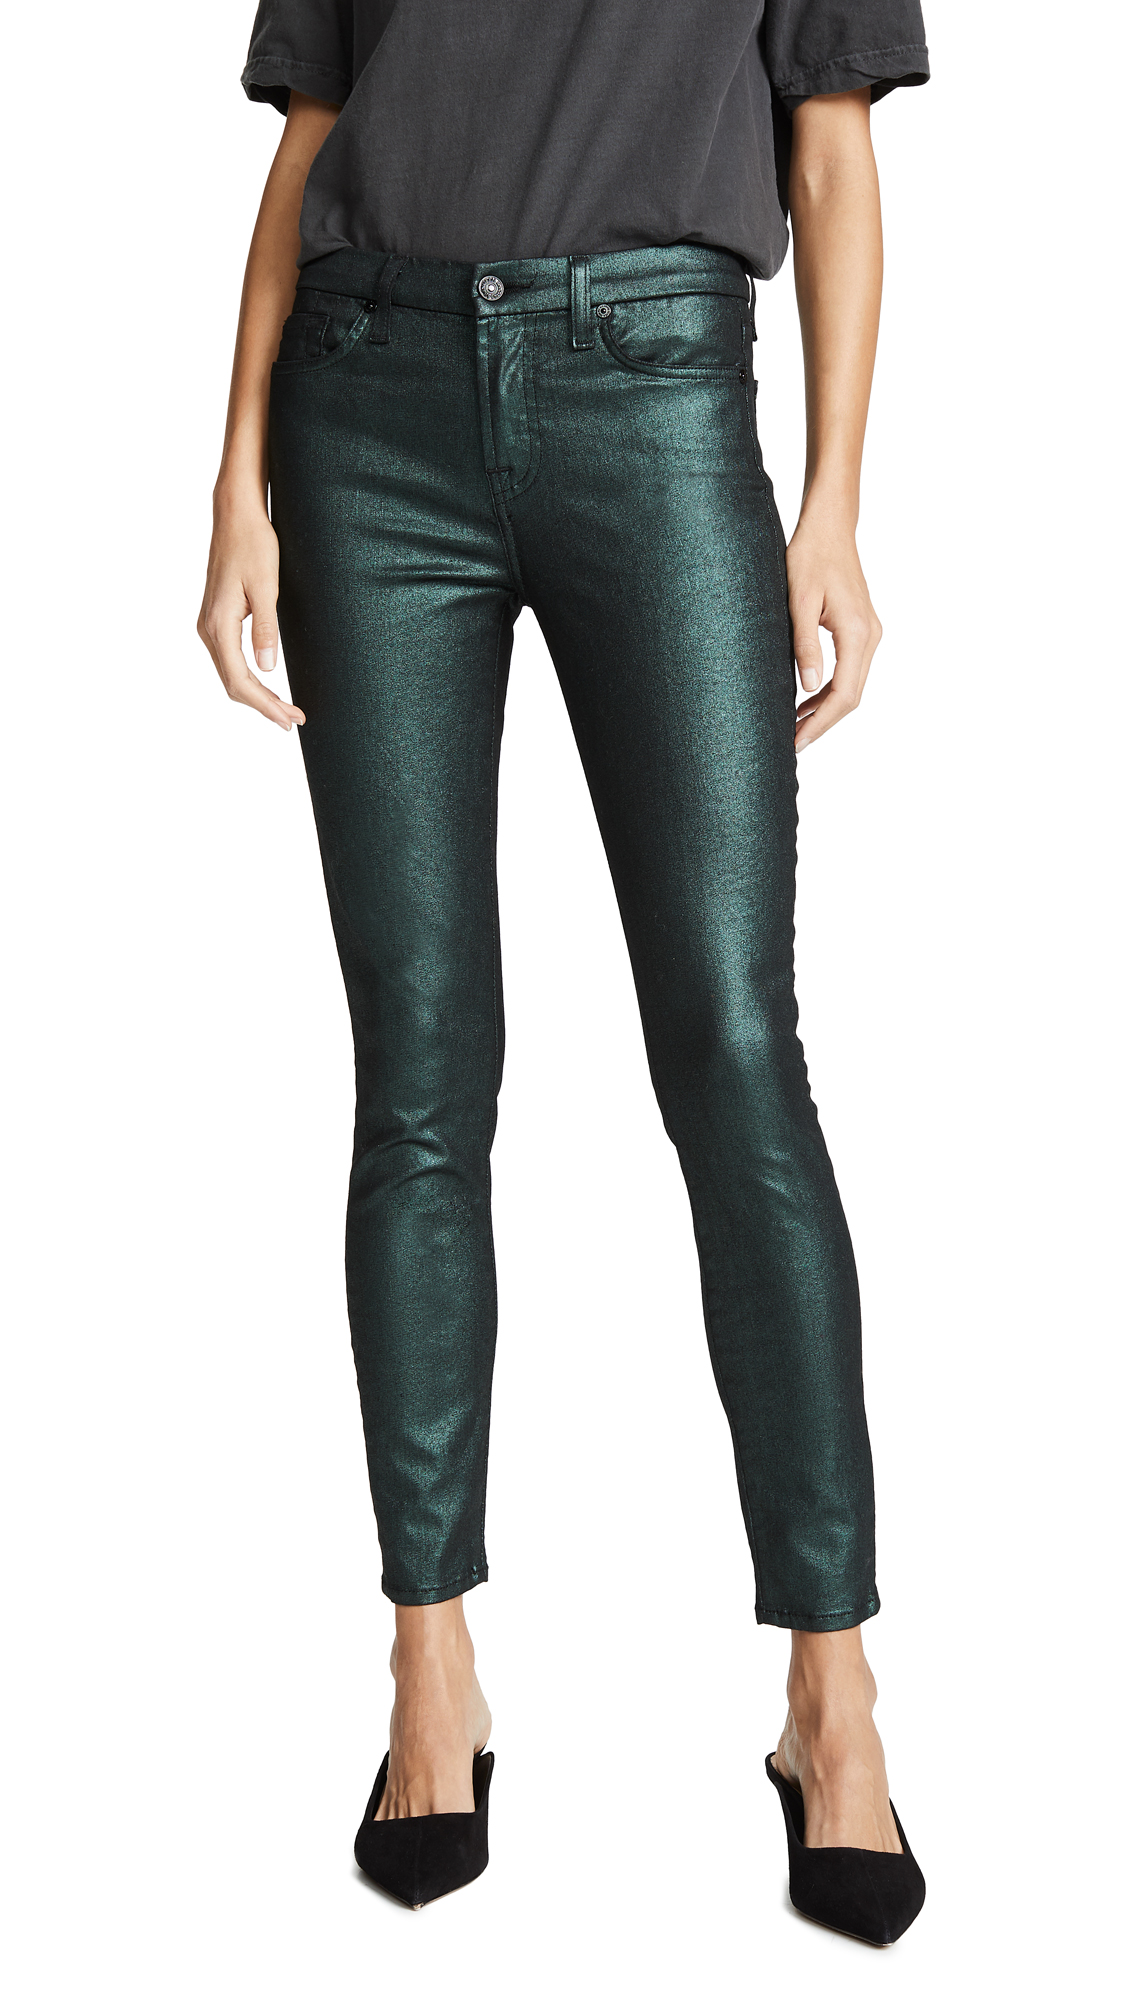 7 For All Mankind Ankle Skinny Jeans - Emerald